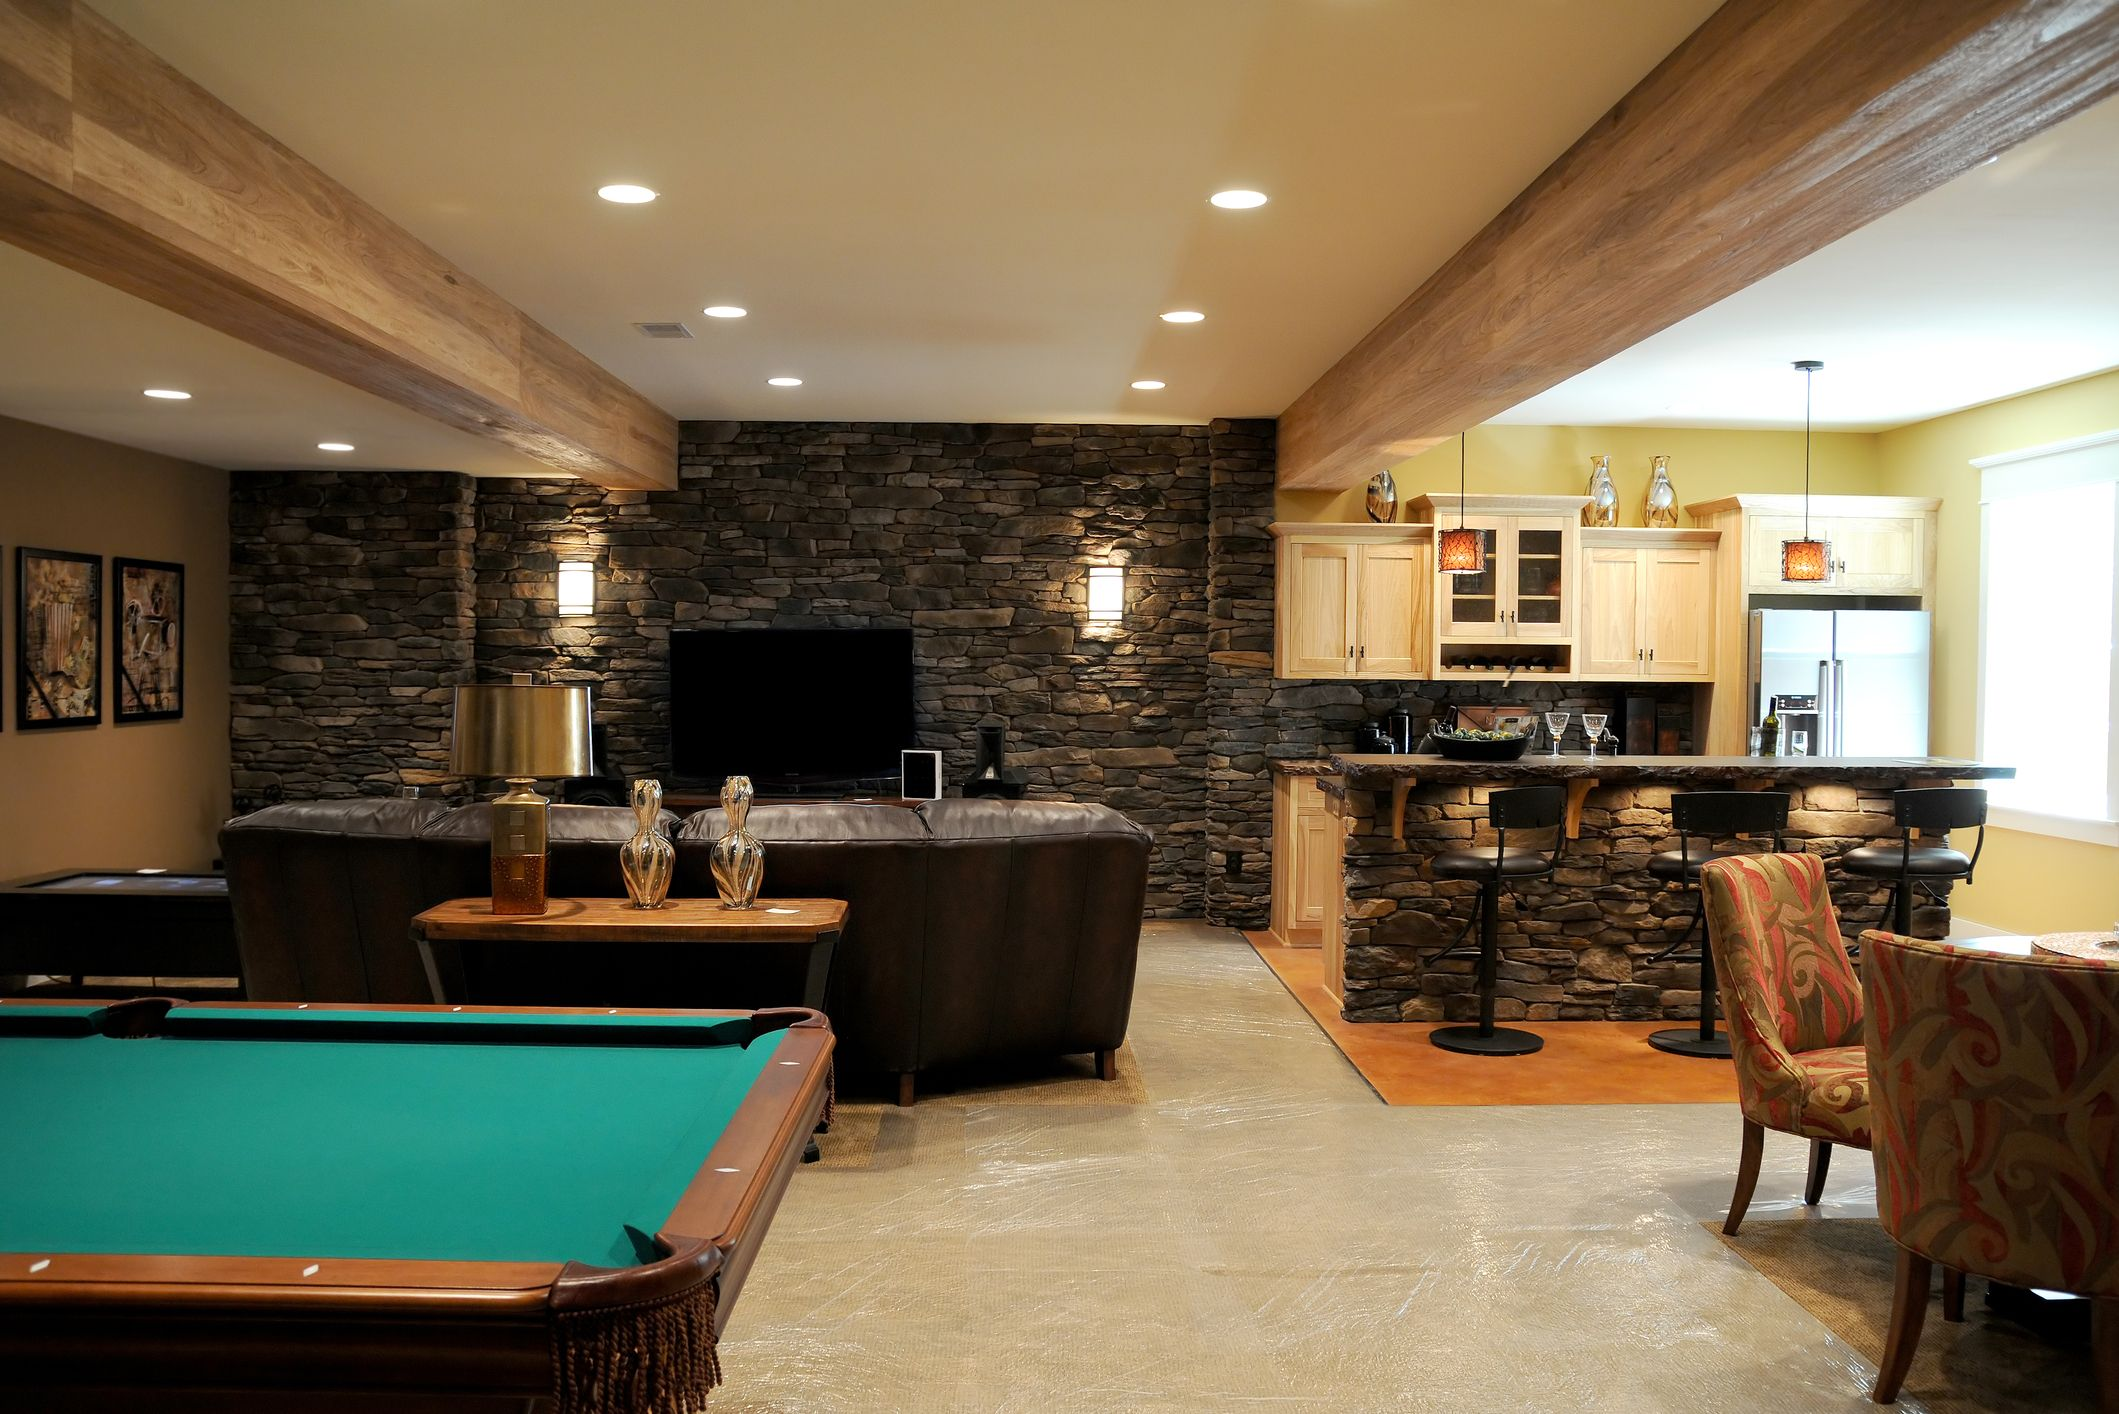 basement interior design - 1000+ images about basement remodel ideas on Pinterest Stone ...